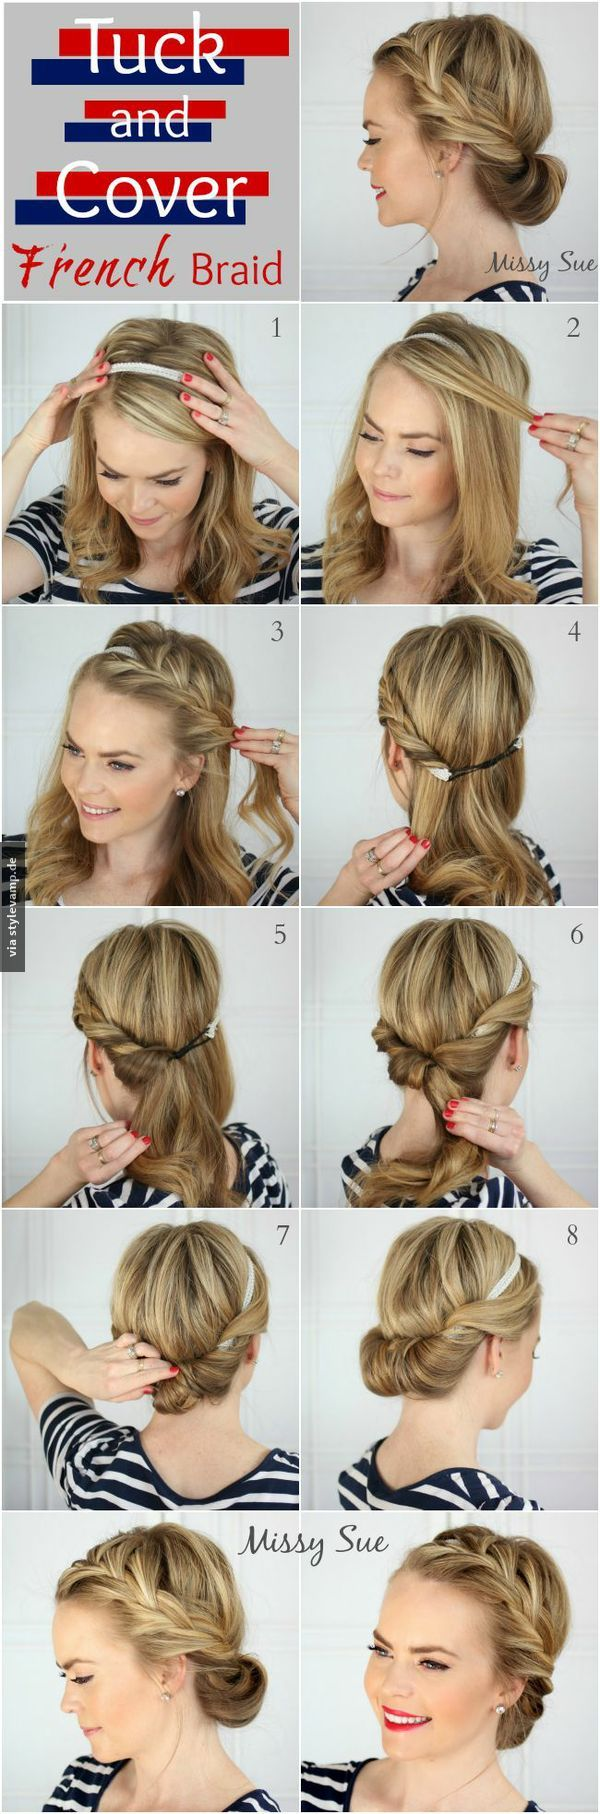 Great tutorial for French braid hairstyle. Perfect for Wiesn & Co.